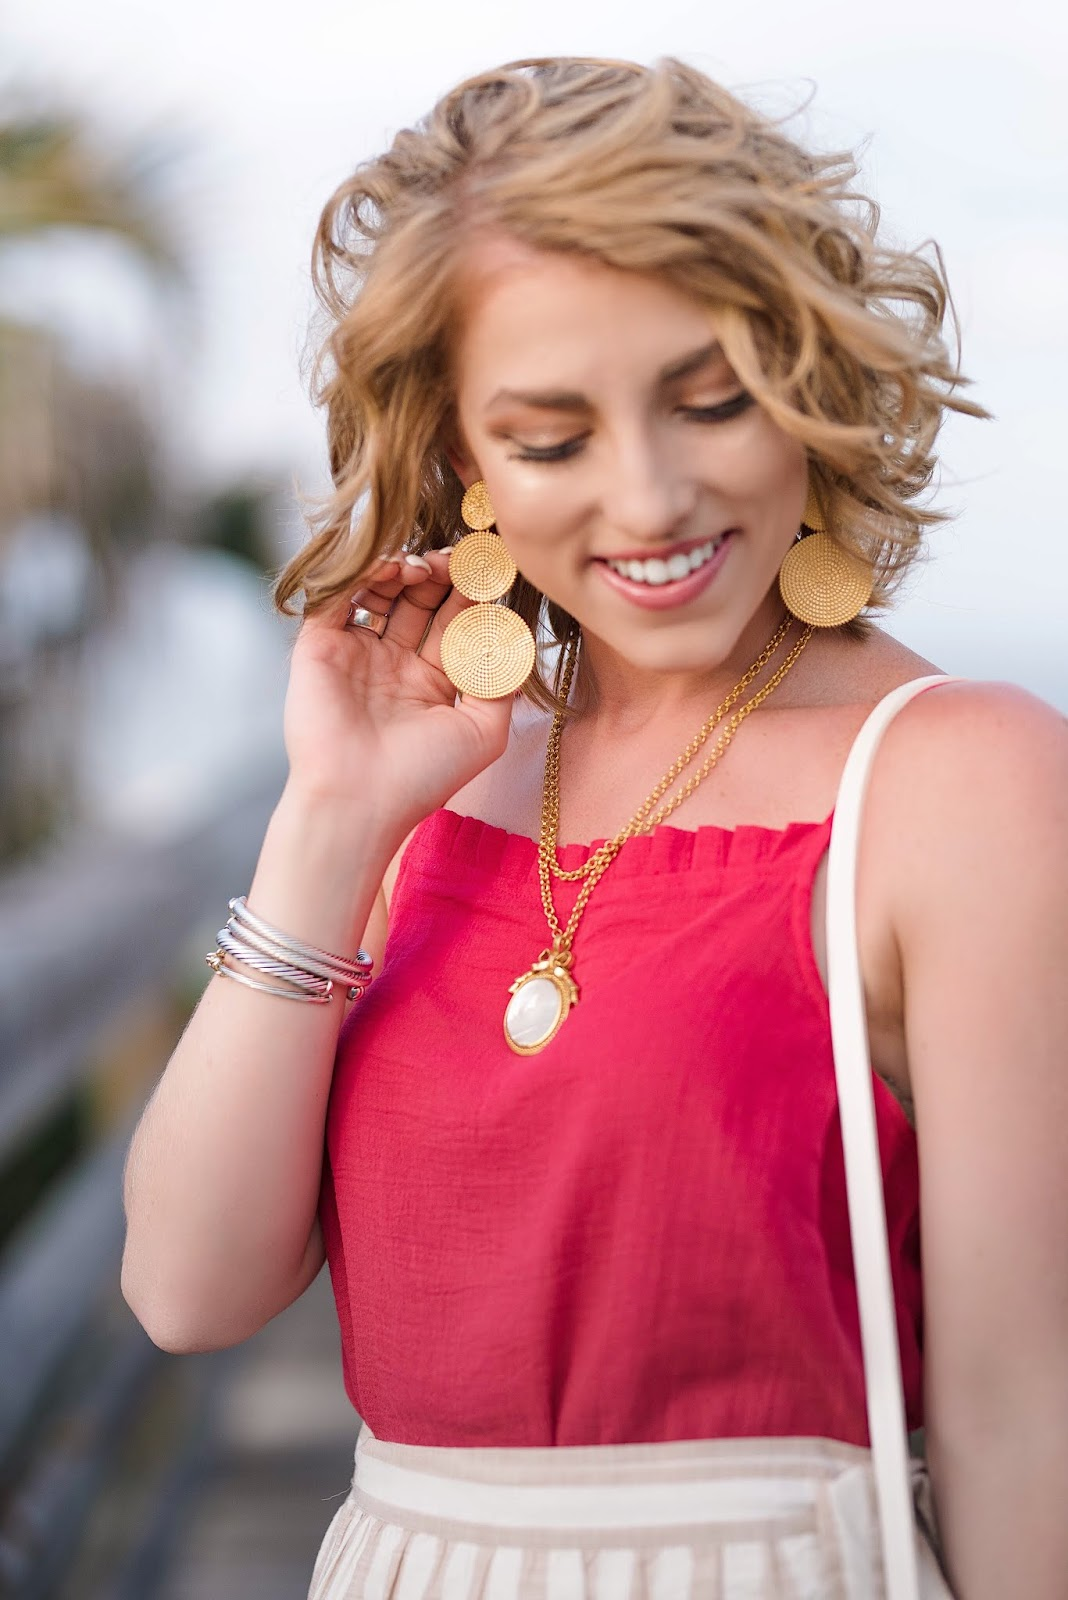 Lisi Lerch Greta Gold Earrings - Something Delightful Blog